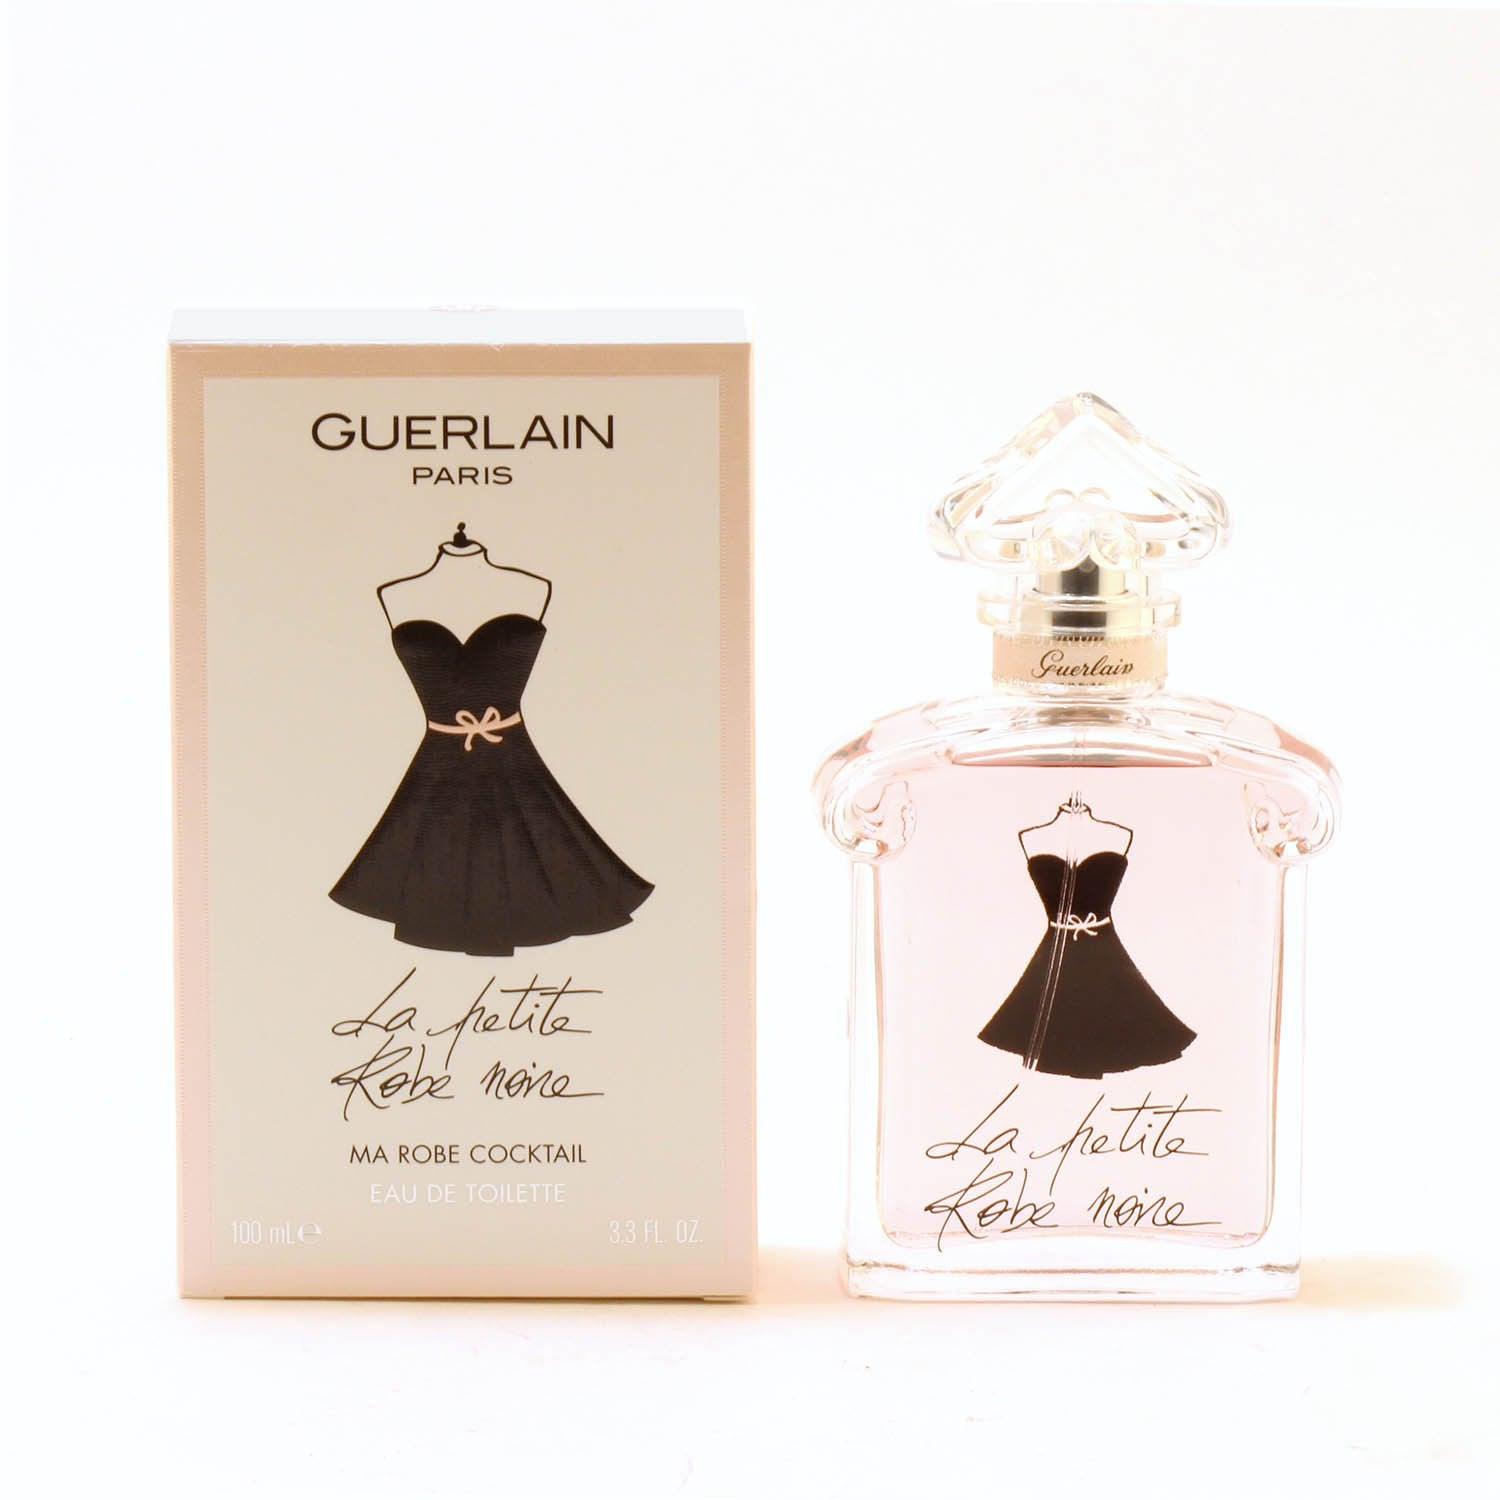 Perfume - GUERLAIN LA PETITE ROBE NOIR FOR WOMEN  - EAU DE TOILETTE SPRAY, 3.4 OZ